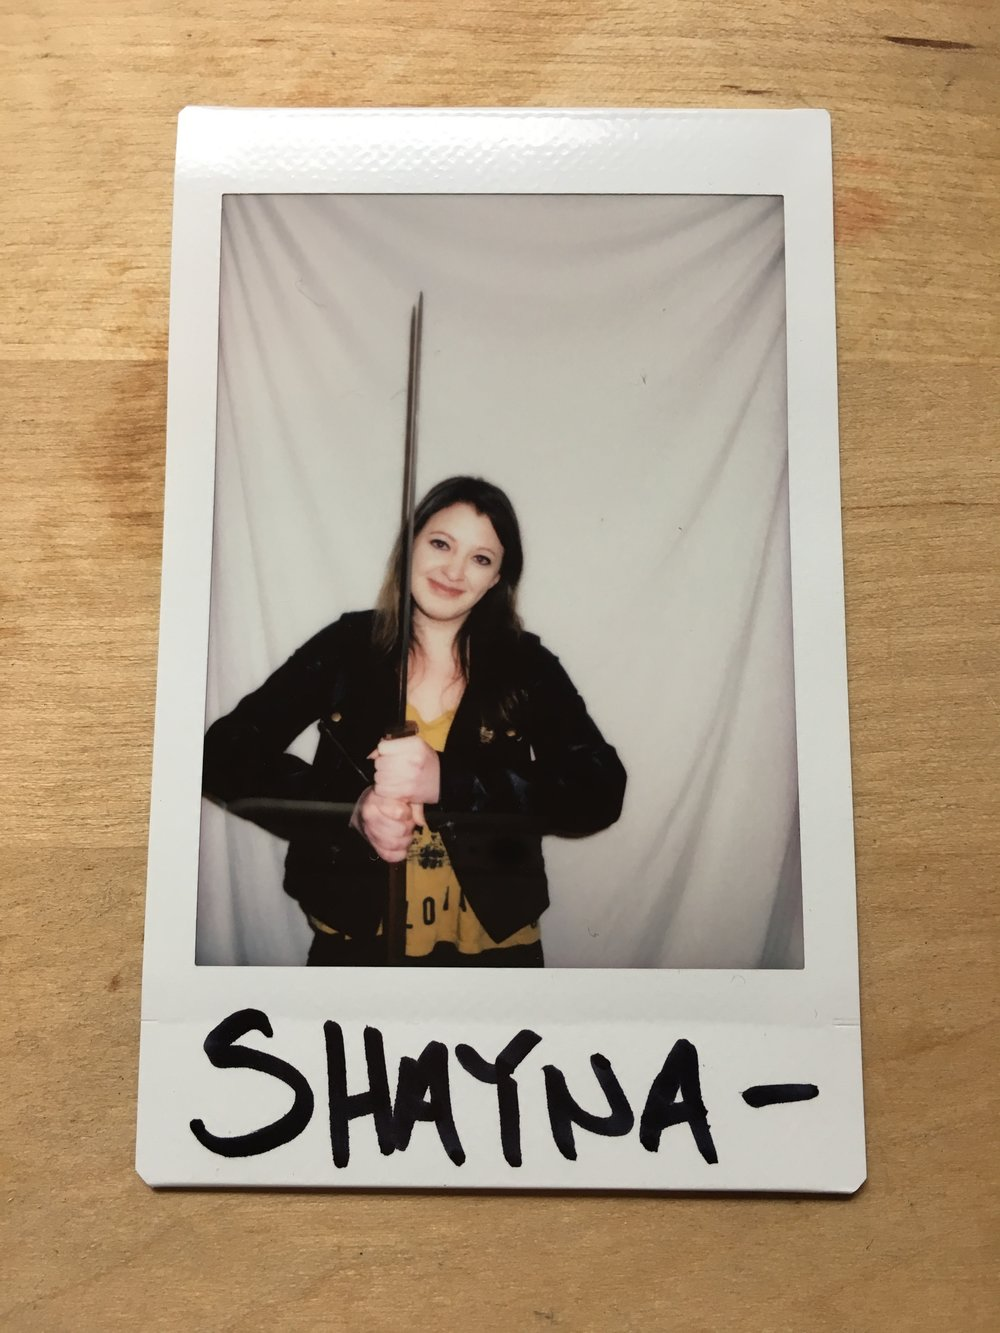 Shayna Chabrow    Publicist    Shayna.SubRosa@gmail.com       Currently listening to:   Ravyn Lenae  Steve Lacy  Nick Hakim  Japanese Breakfast  Tyler, The Creator  Jay Reatard  New Order  No Vacation  Yellow Days  SZA   Favorite Dipping Sauce:    BBQ   Superpower:    Mind Reading